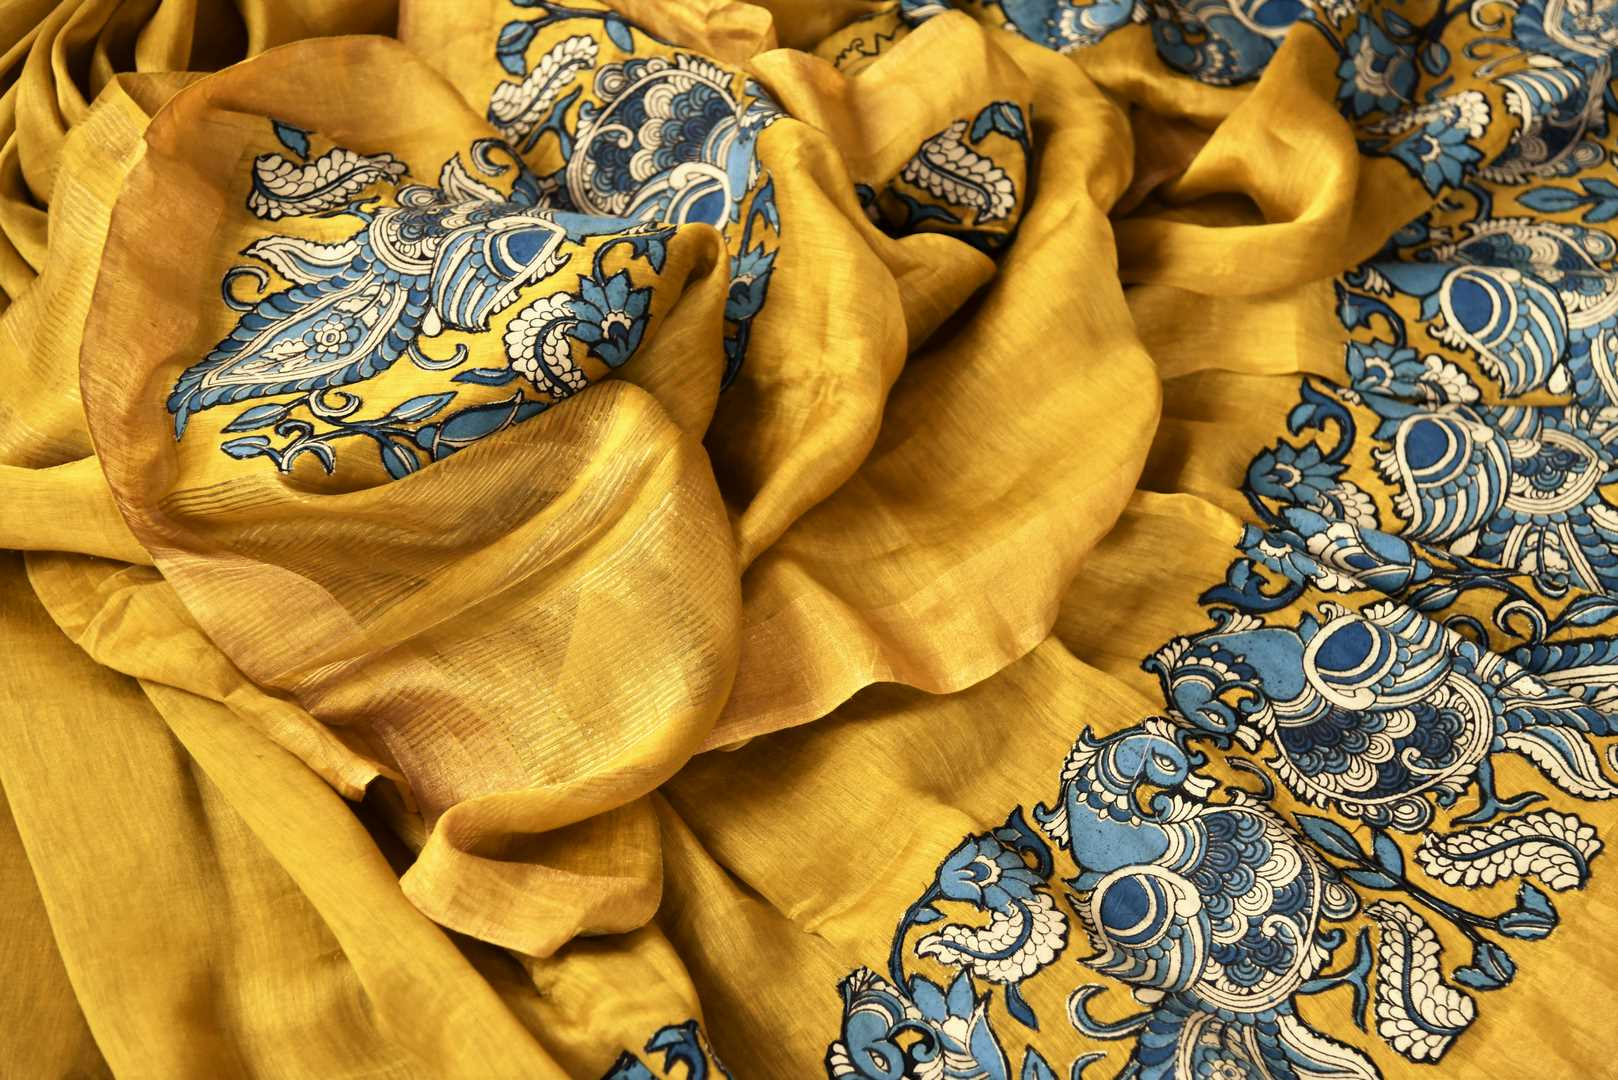 Mustard yellow tussar silk saree buy online in USA with Kalamkari applique work. Beautifully designed woven saree is a graceful choice for special occasions. Shop Indian handloom saris, silk sarees in USA from an alluring collection available at Pure Elegance fashion store.-details